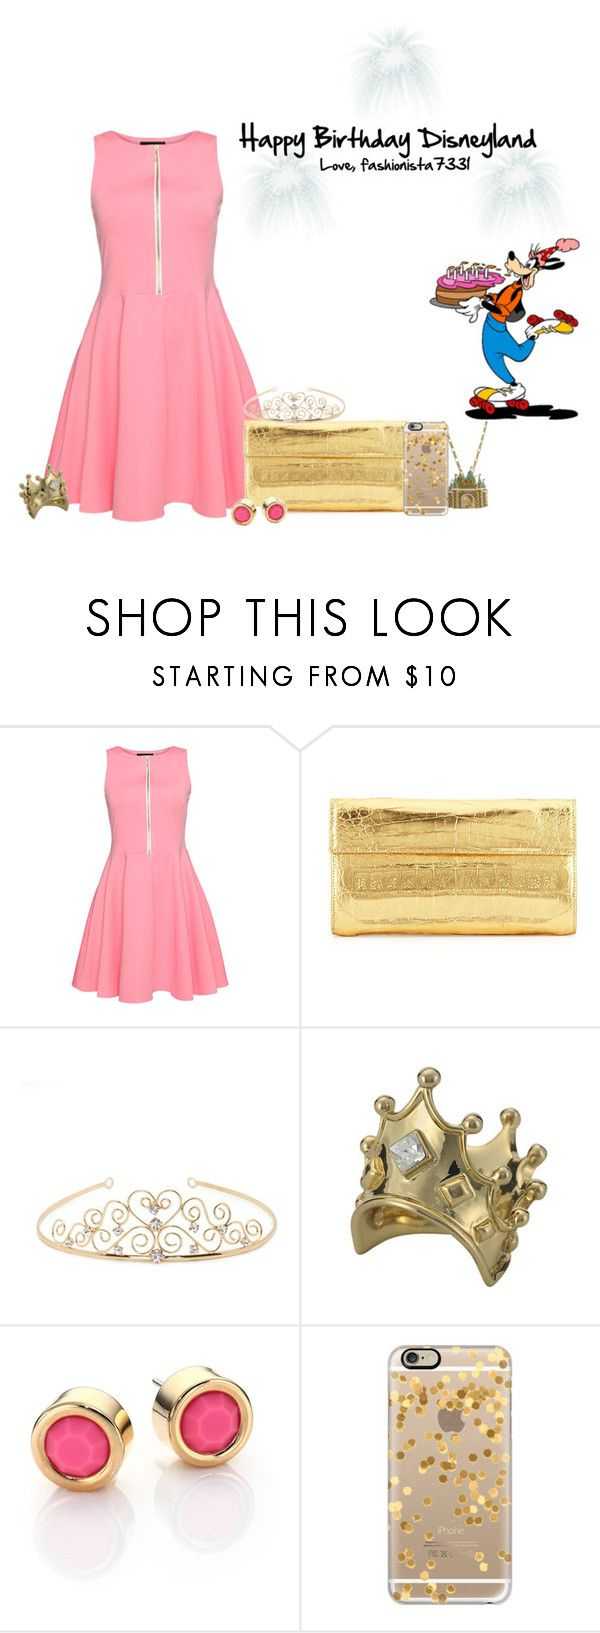 """Happy Birthday Disneyland!"" by fashionista7331 ❤ liked on Polyvore featuring Nancy Gonzalez, Jon Richard, Disney Couture, Marc by Marc Jacobs and Casetify"